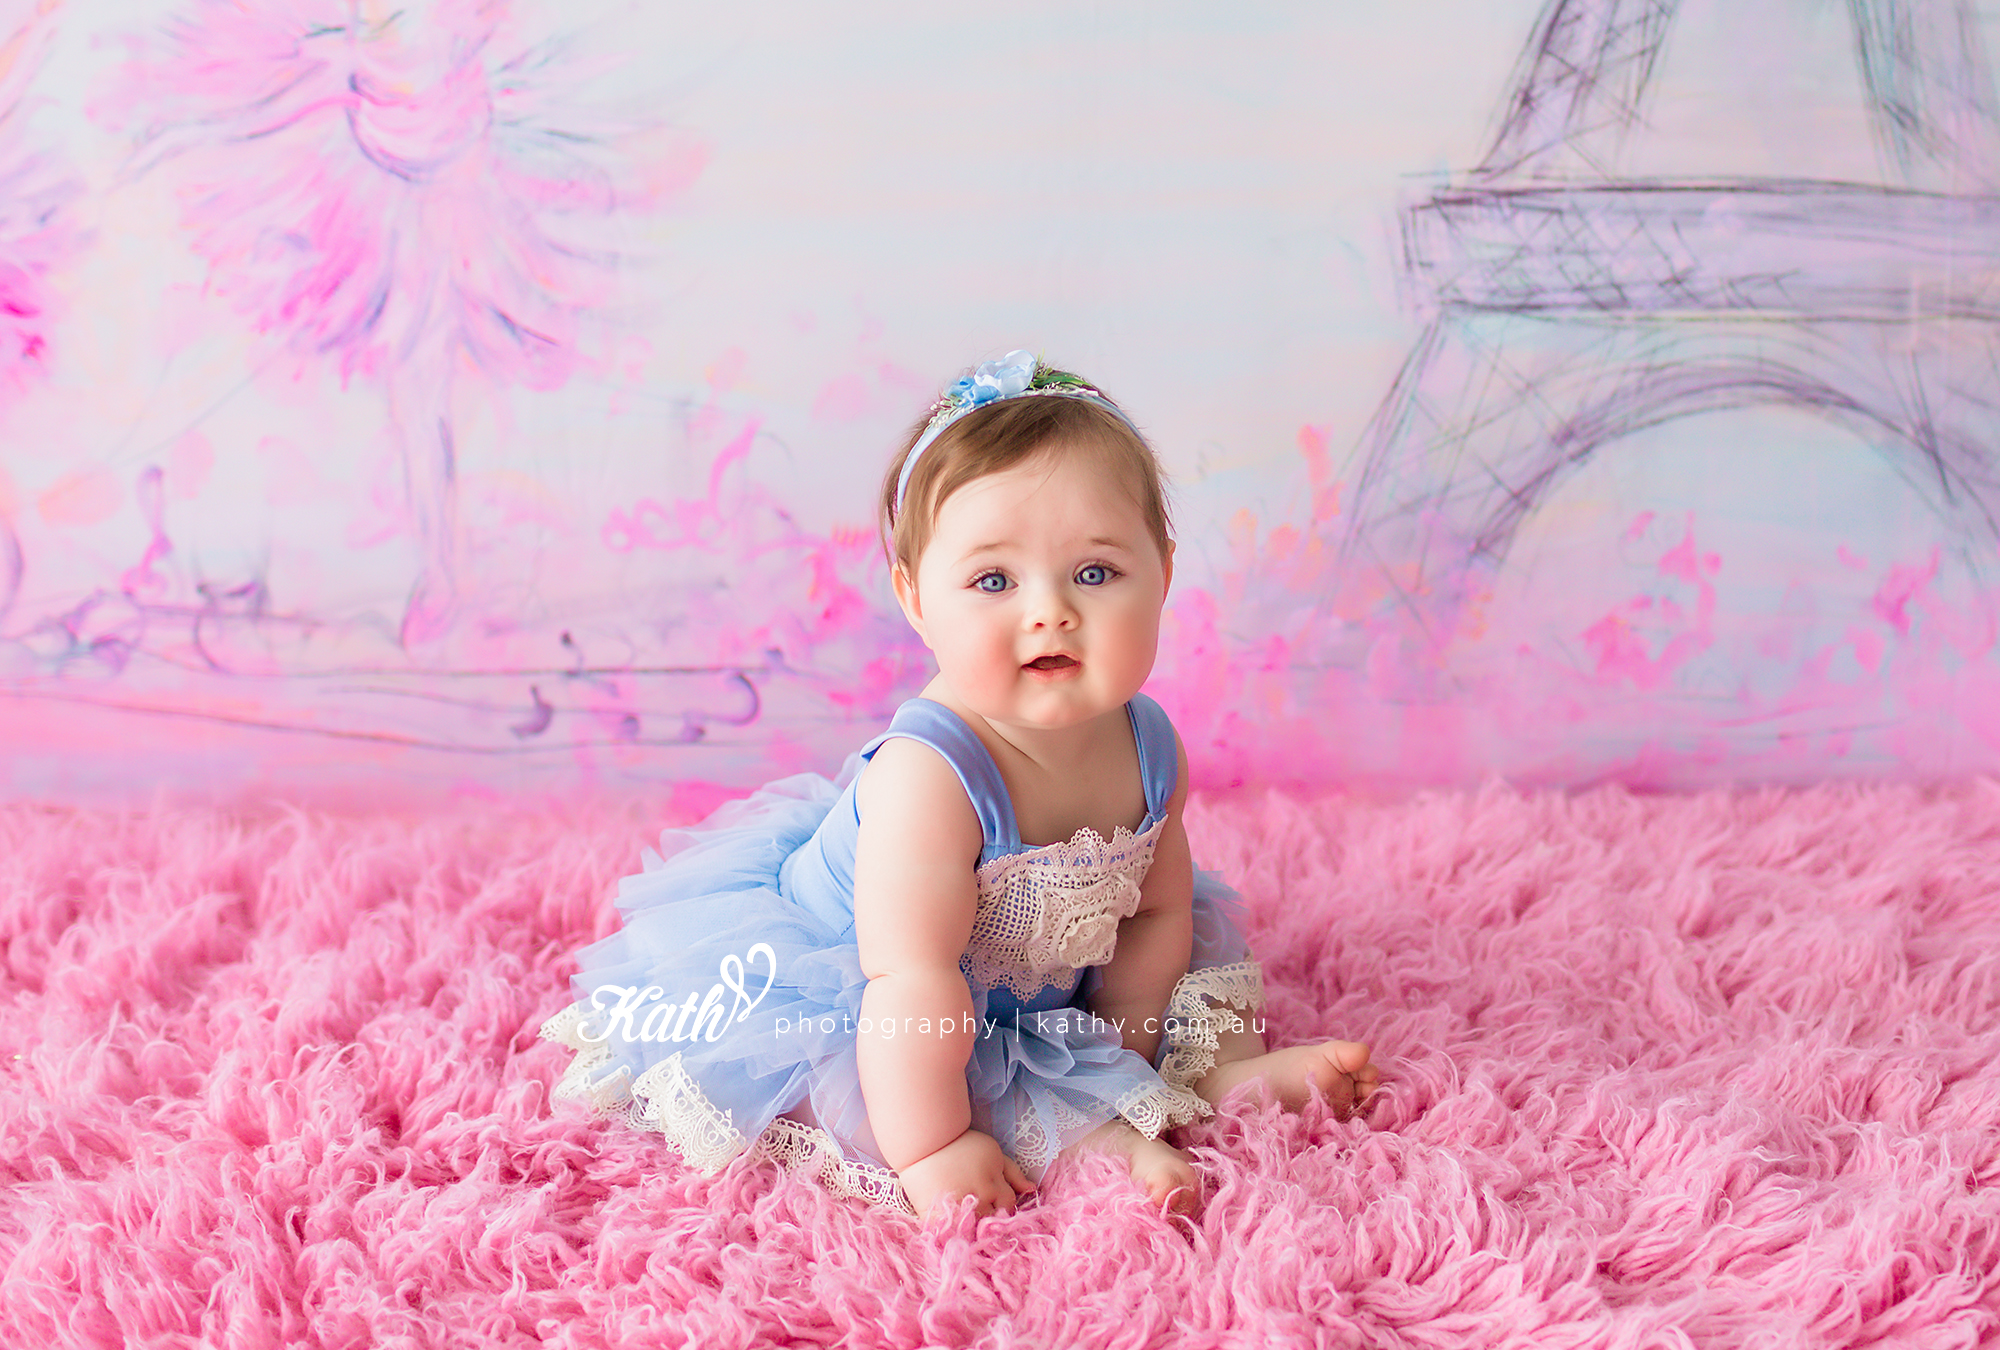 Melbourne-Newborn-Baby-Photography_149.jpg